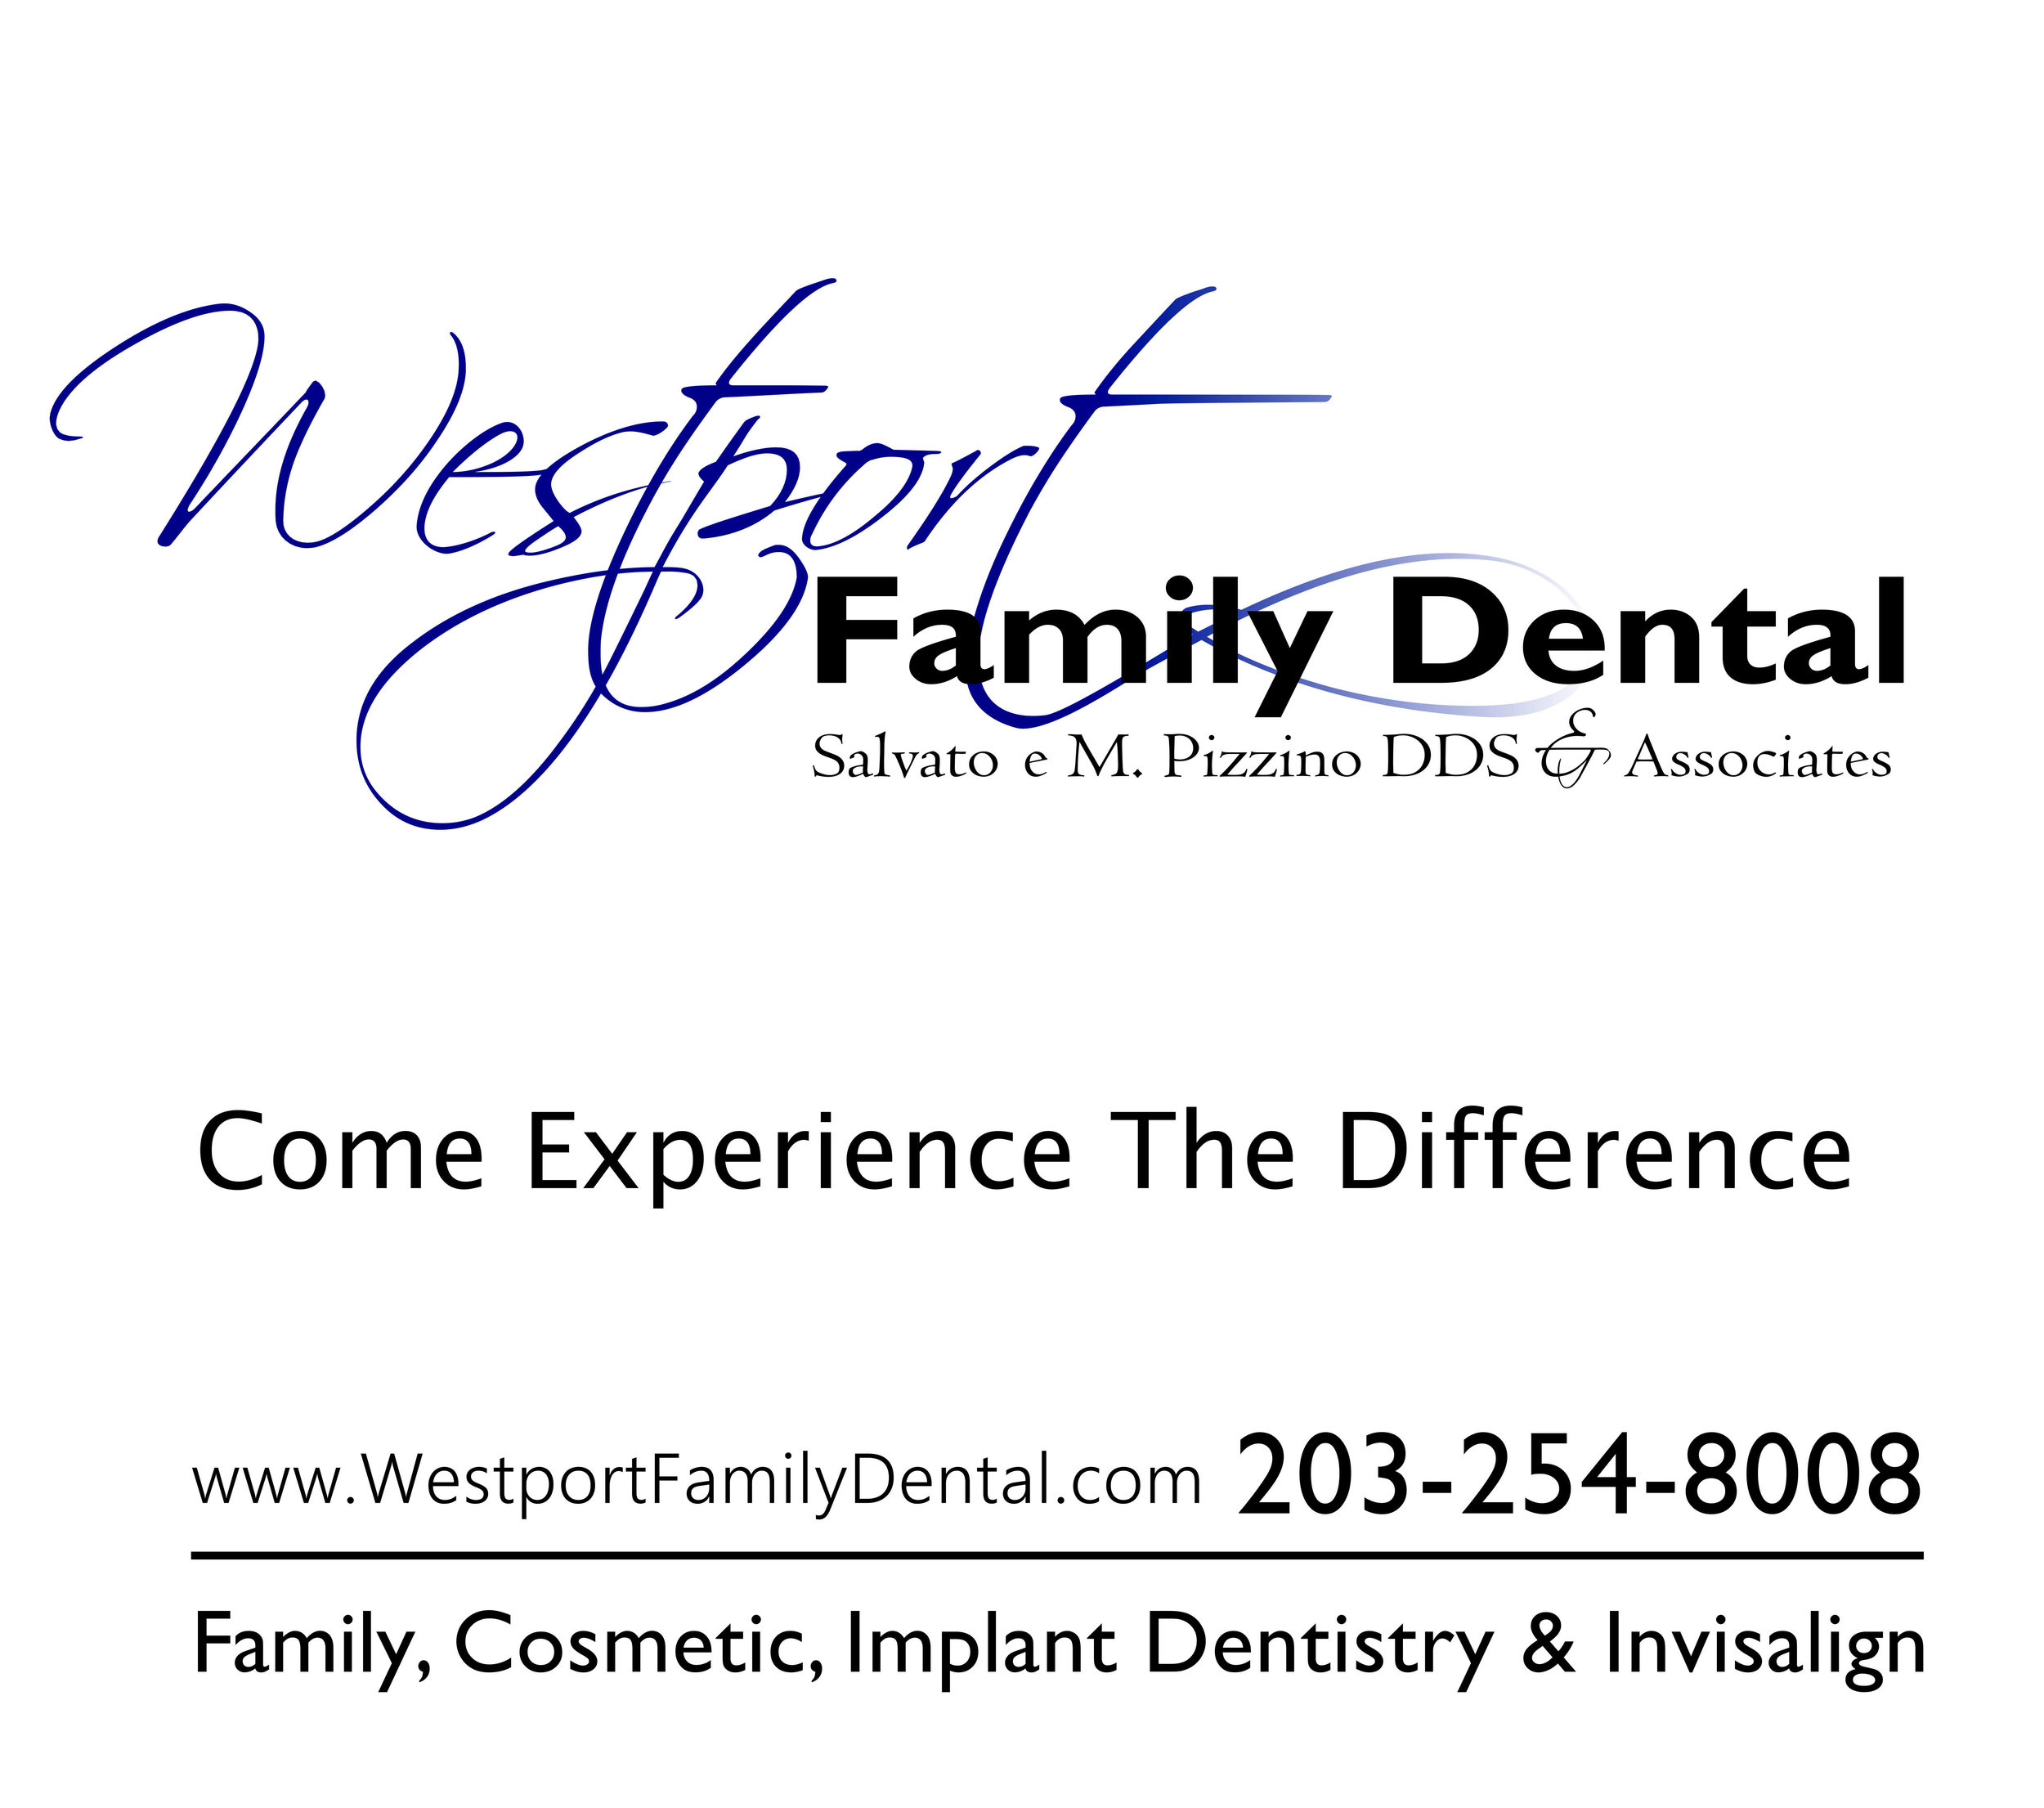 Westport Family Dental - rough TWO[26482].jpg